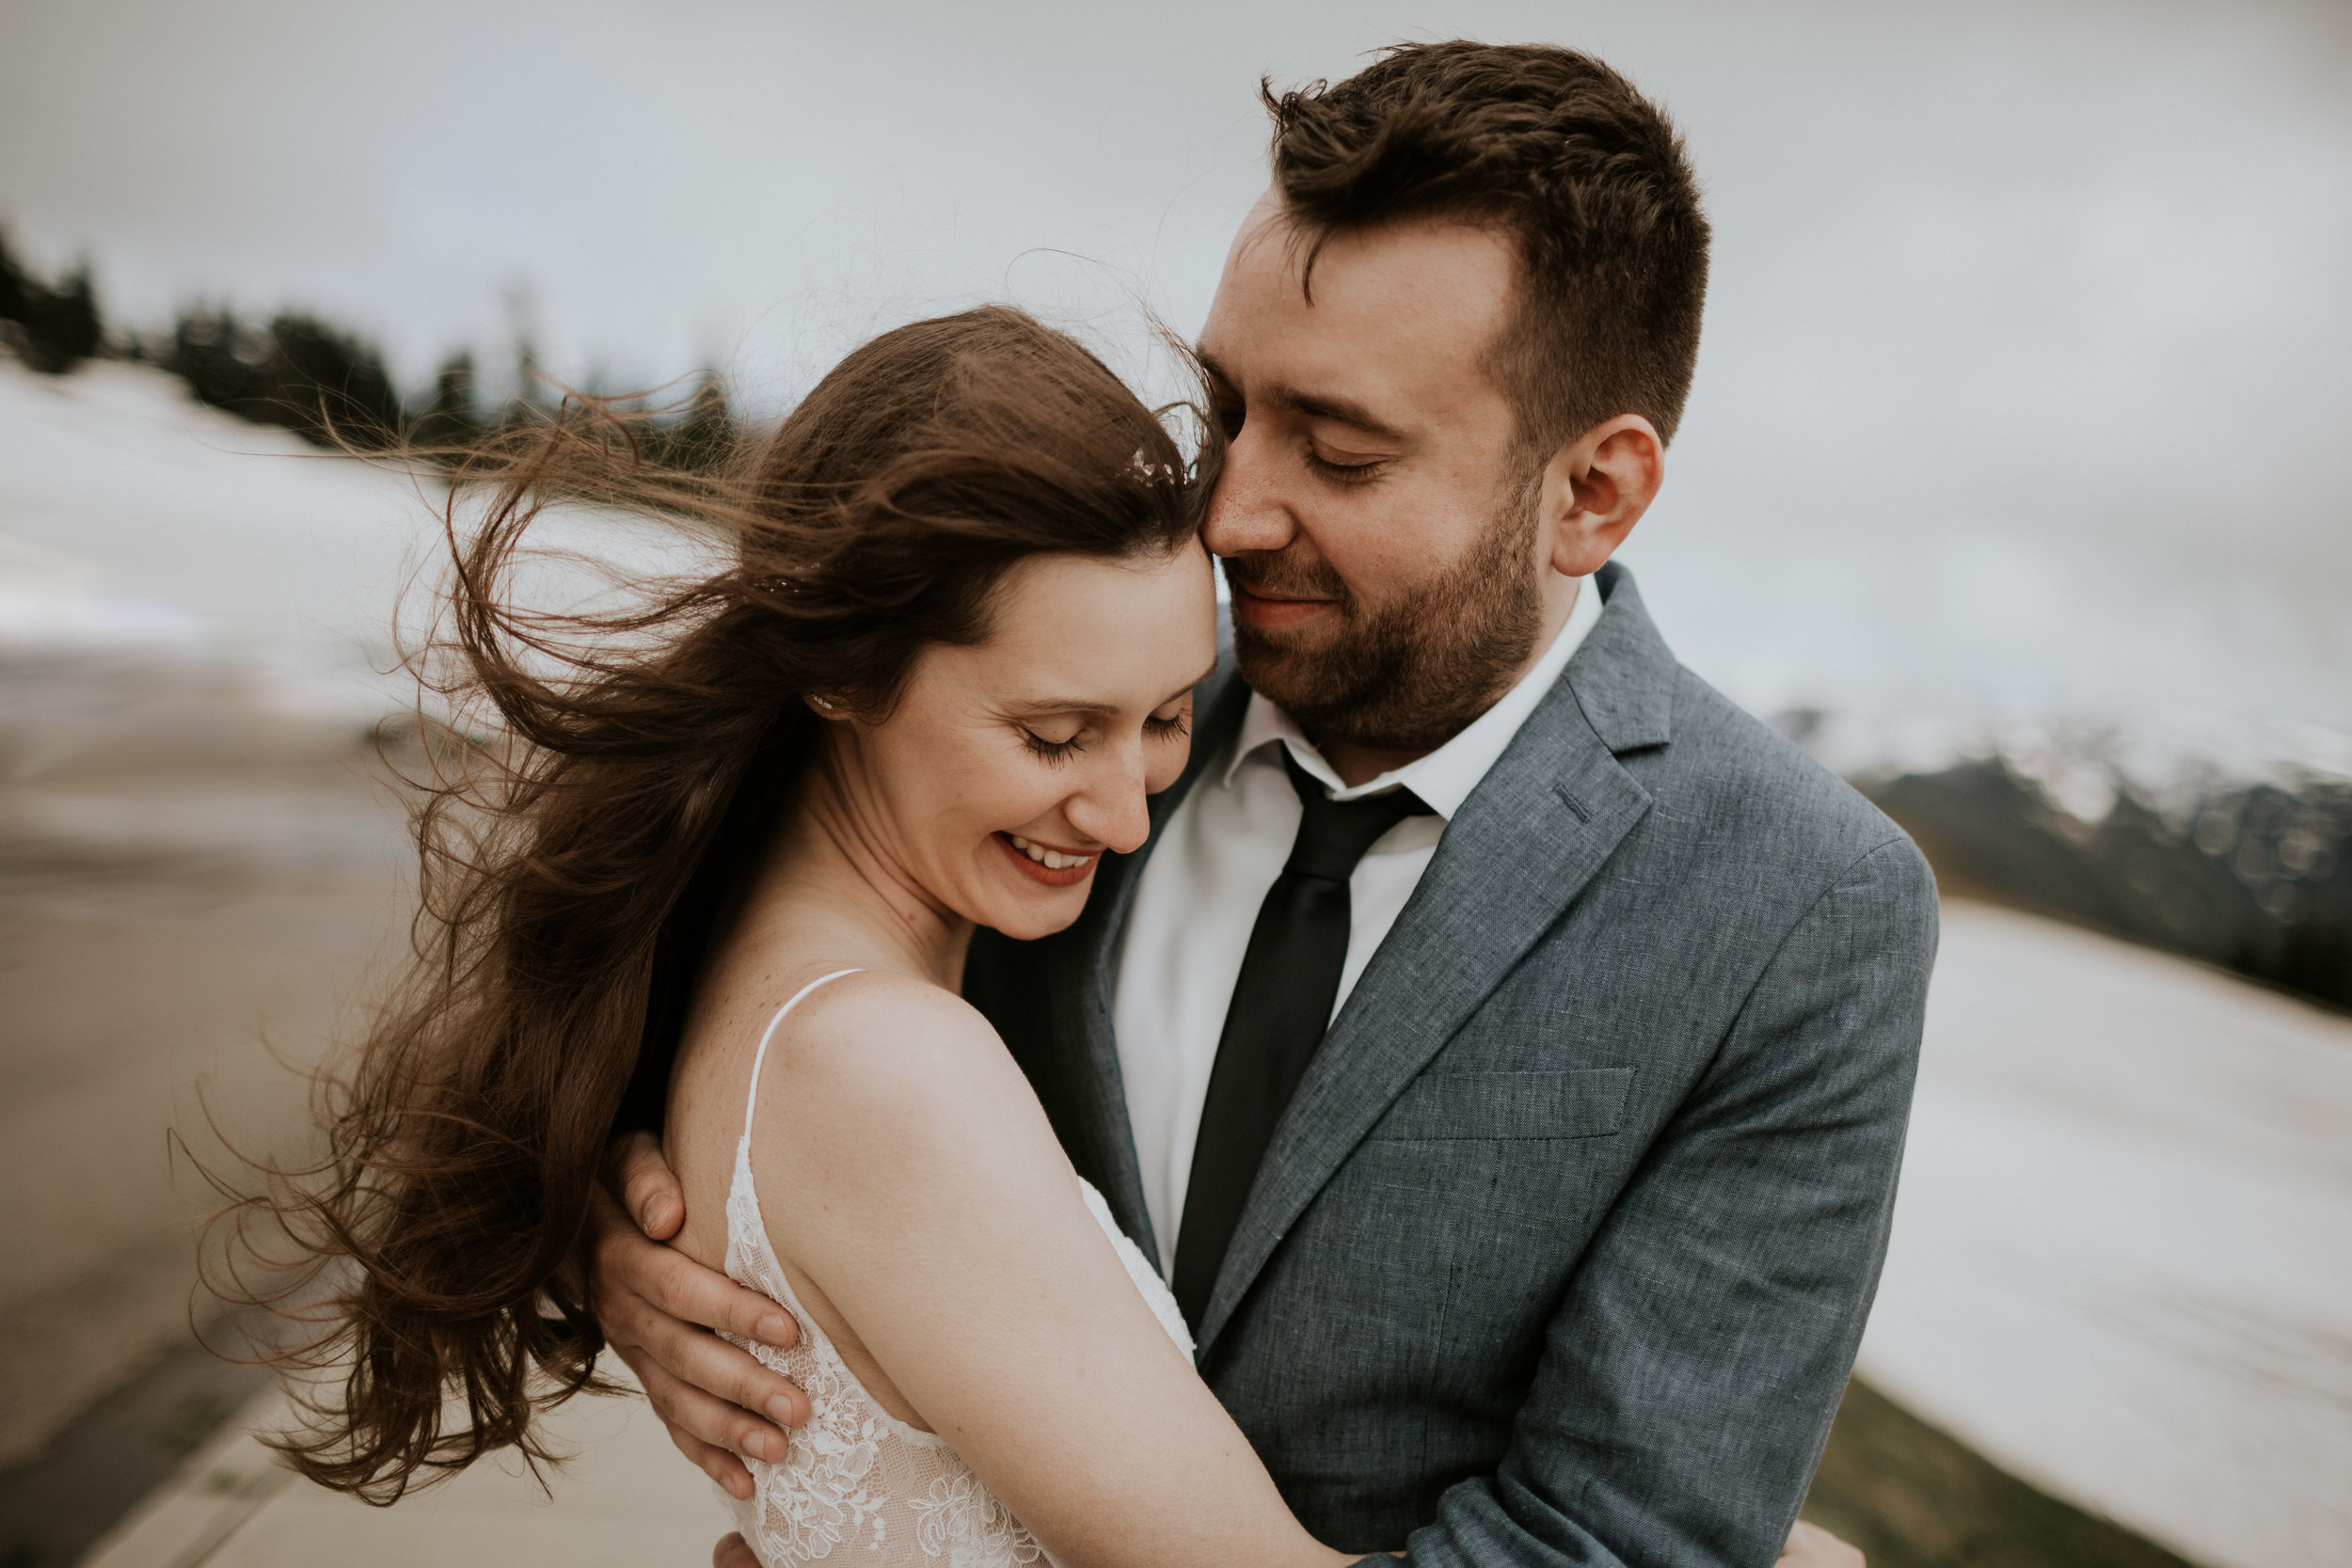 PNW-elopement-wedding-engagement-olympic national park-port angeles-hurricane ridge-lake crescent-kayla dawn photography- photographer-photography-kayladawnphoto-177.jpg